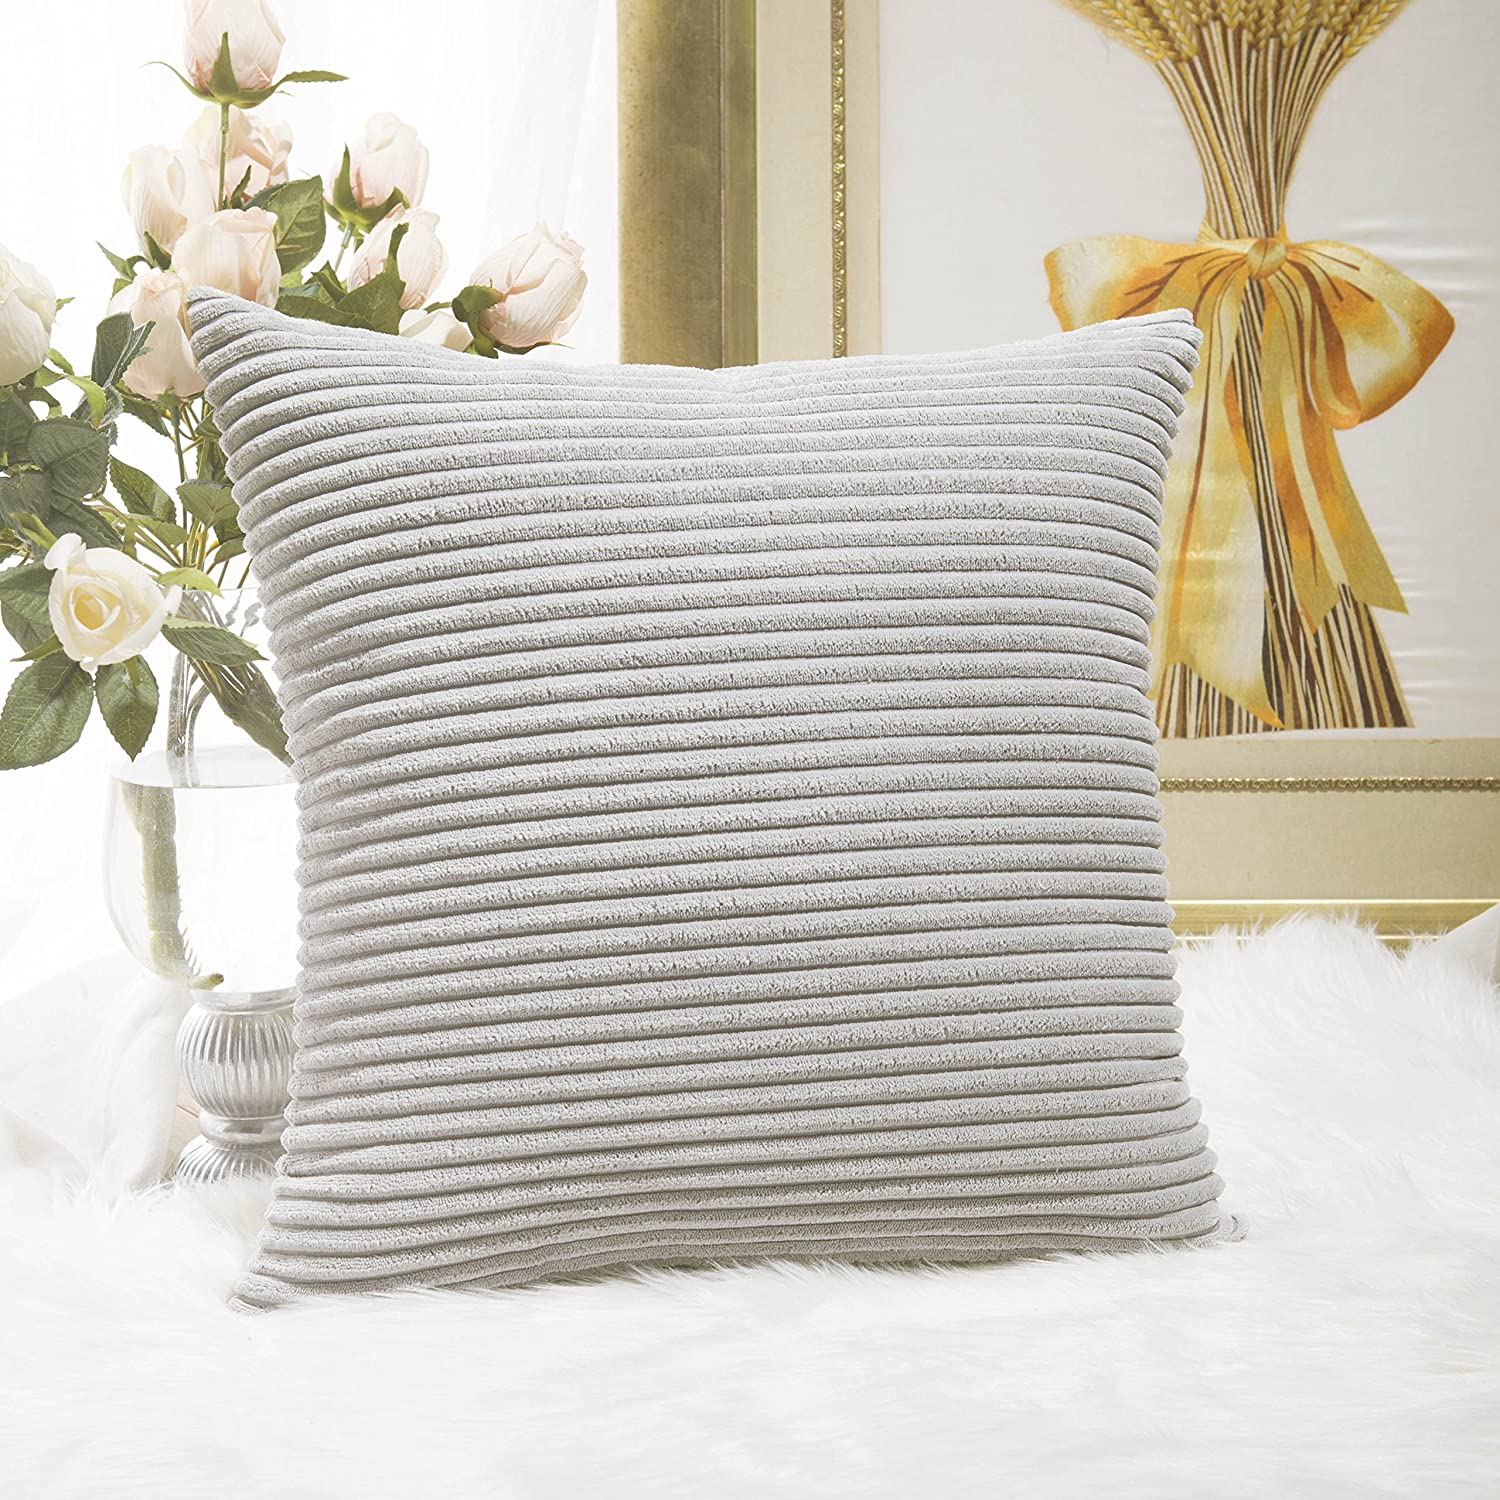 Home Brilliant Striped Corduroy Euro Sham Fall Large Throw Pillow Cover Decorative Cushion Cover for Bed, 24 x 24 inch (60cm), Light Grey